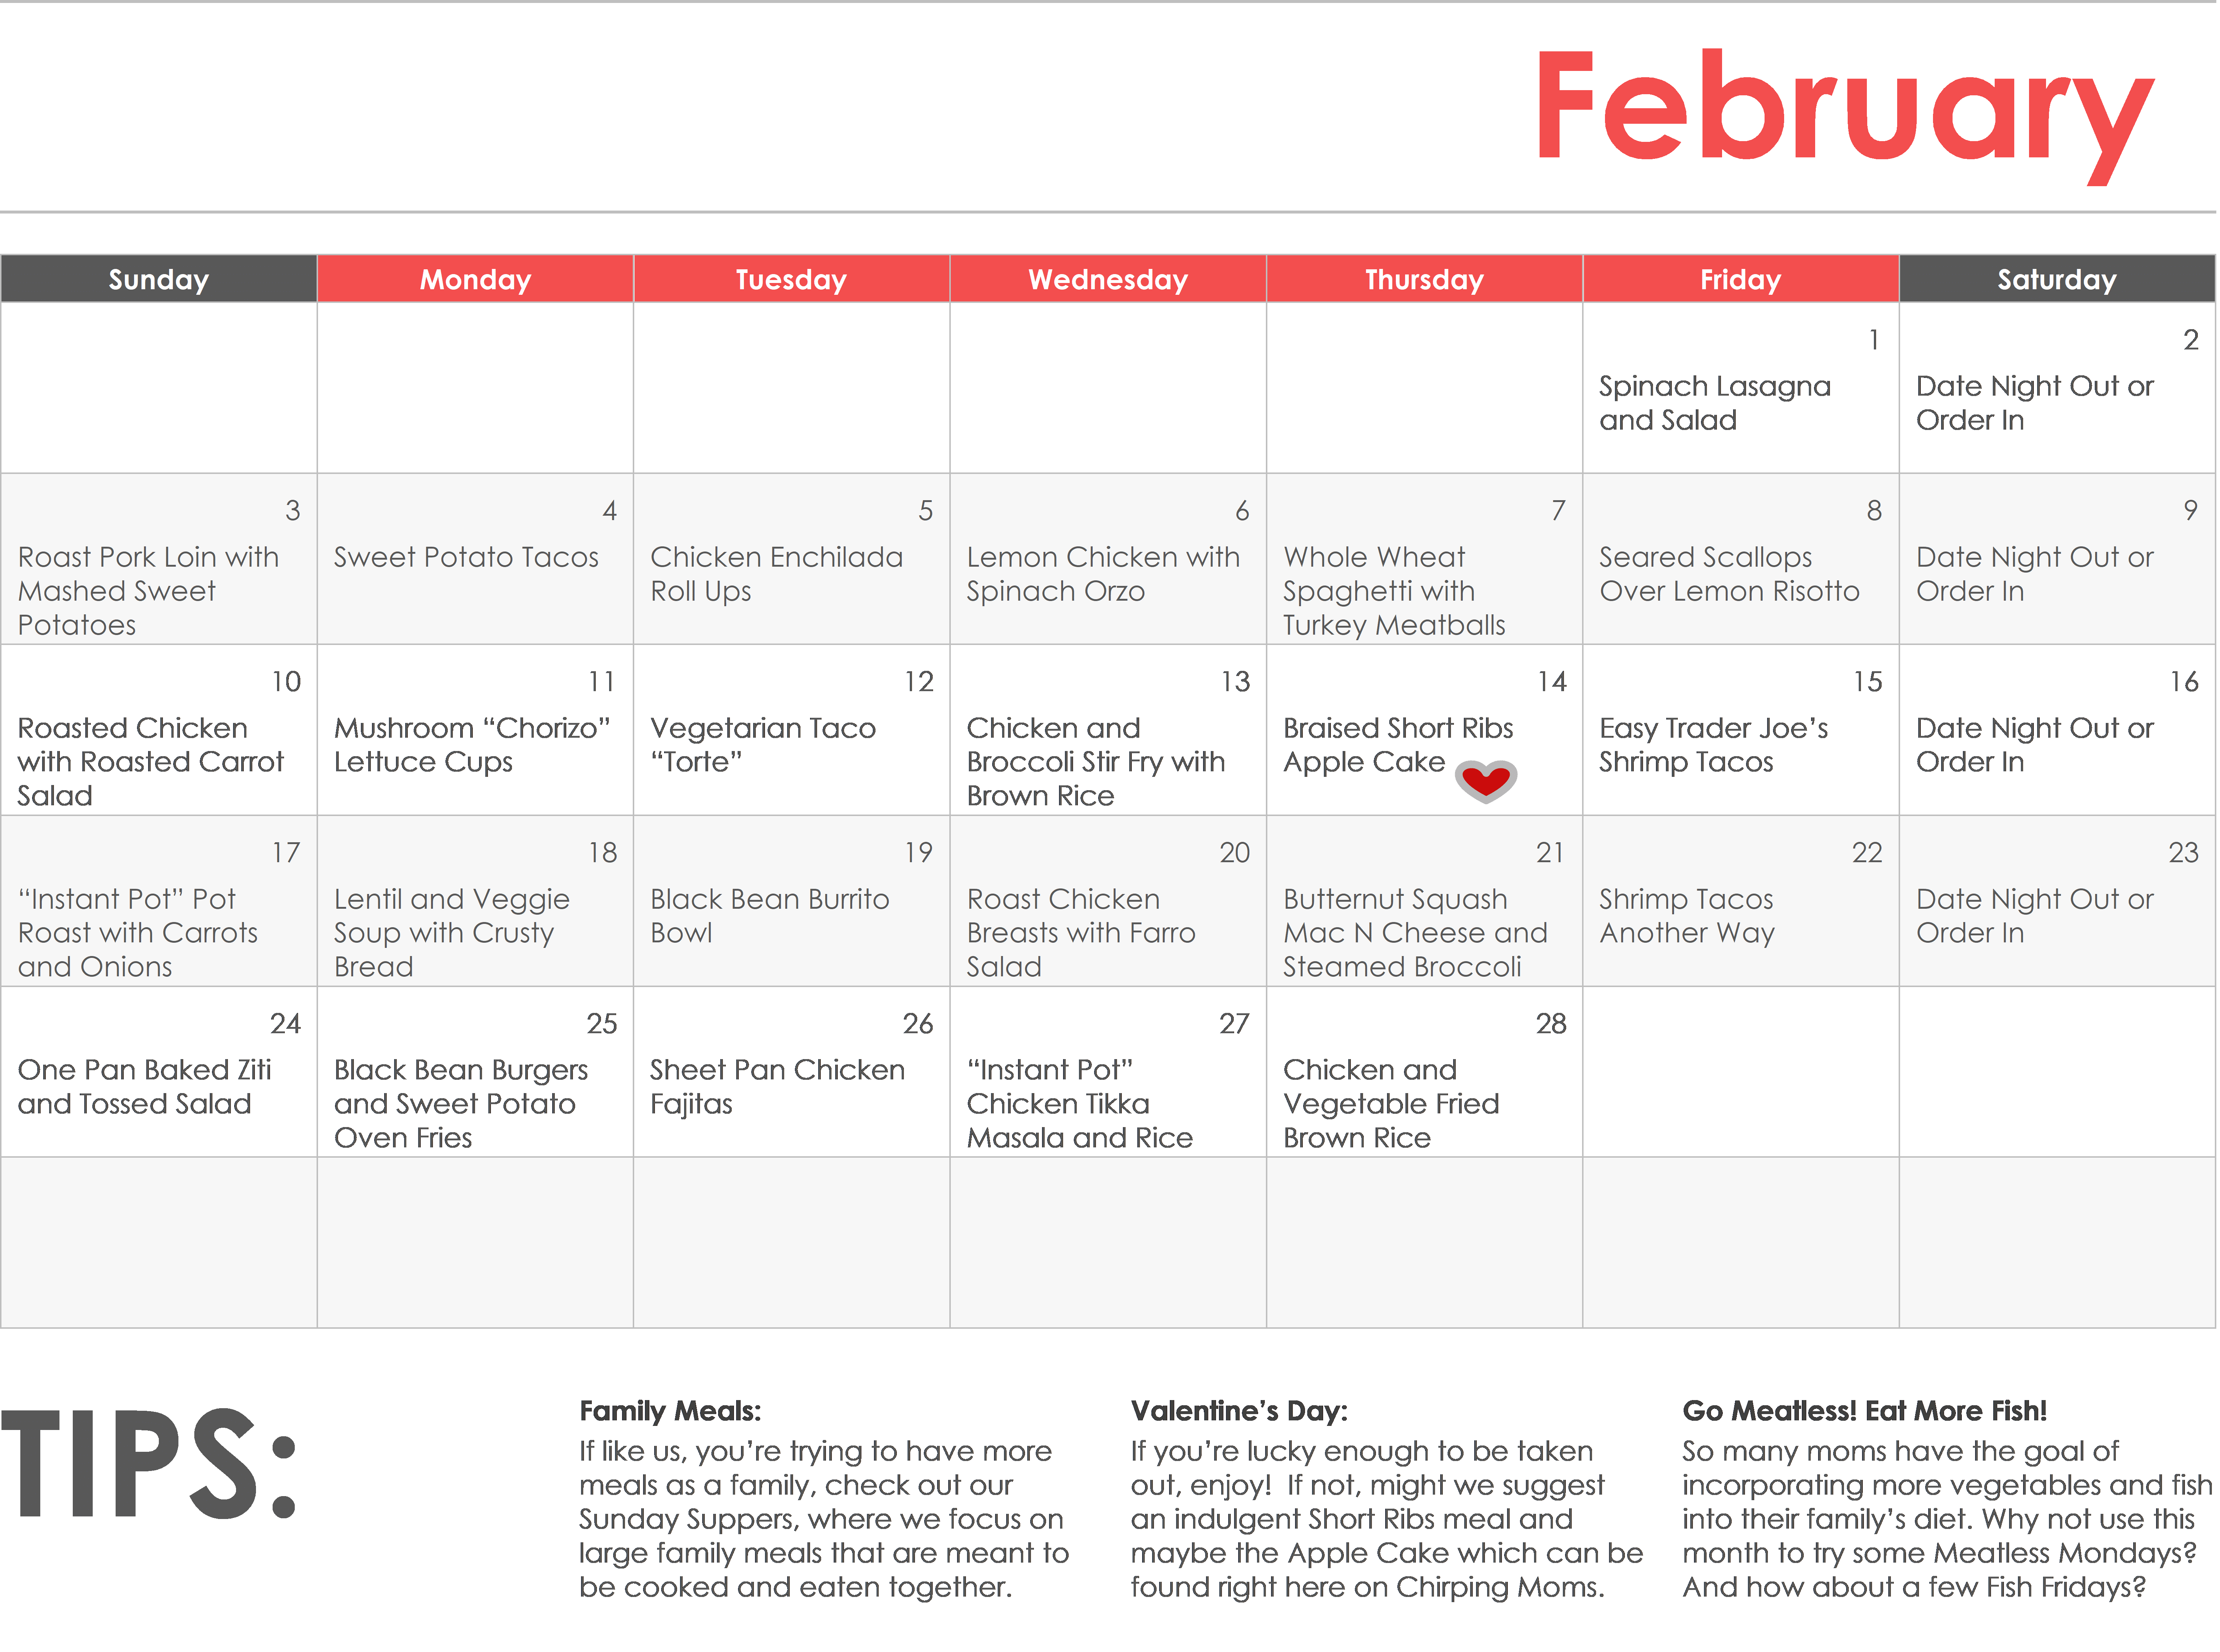 Monthly Meal Planning February Meal Calendar The Chirping Moms